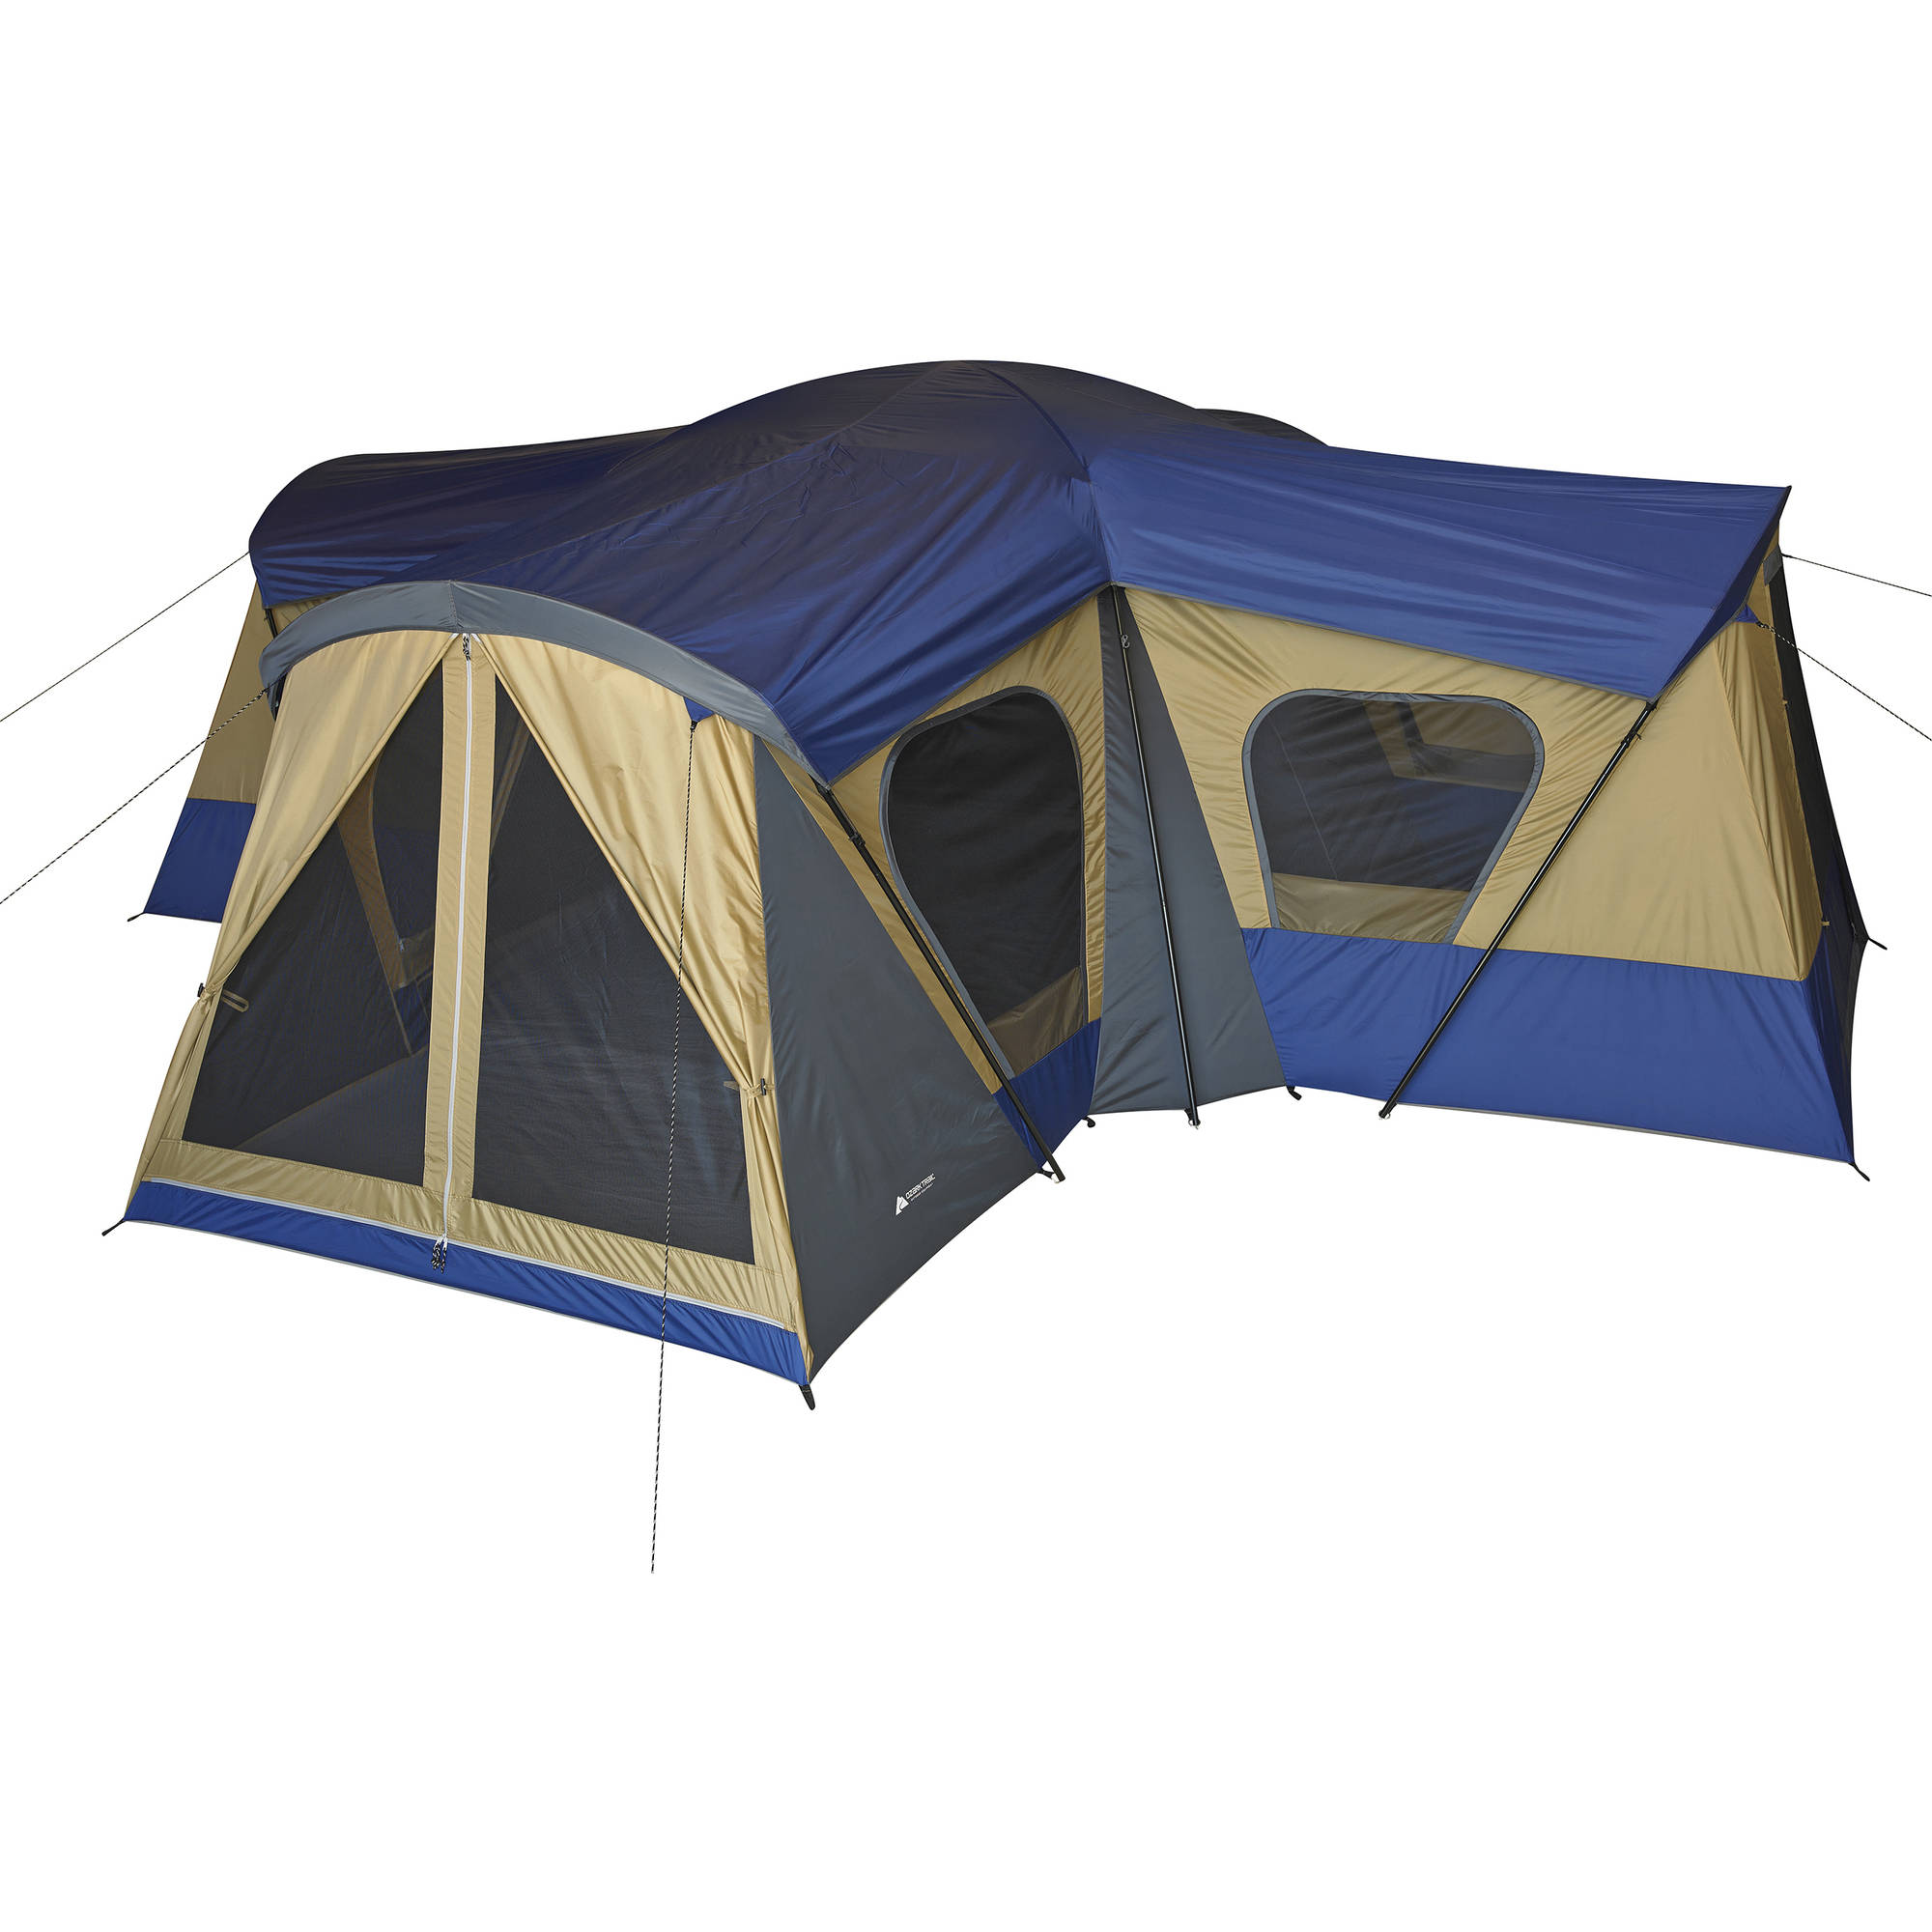 Ozark Trail 14 Person 4 Room Base Camp Tent